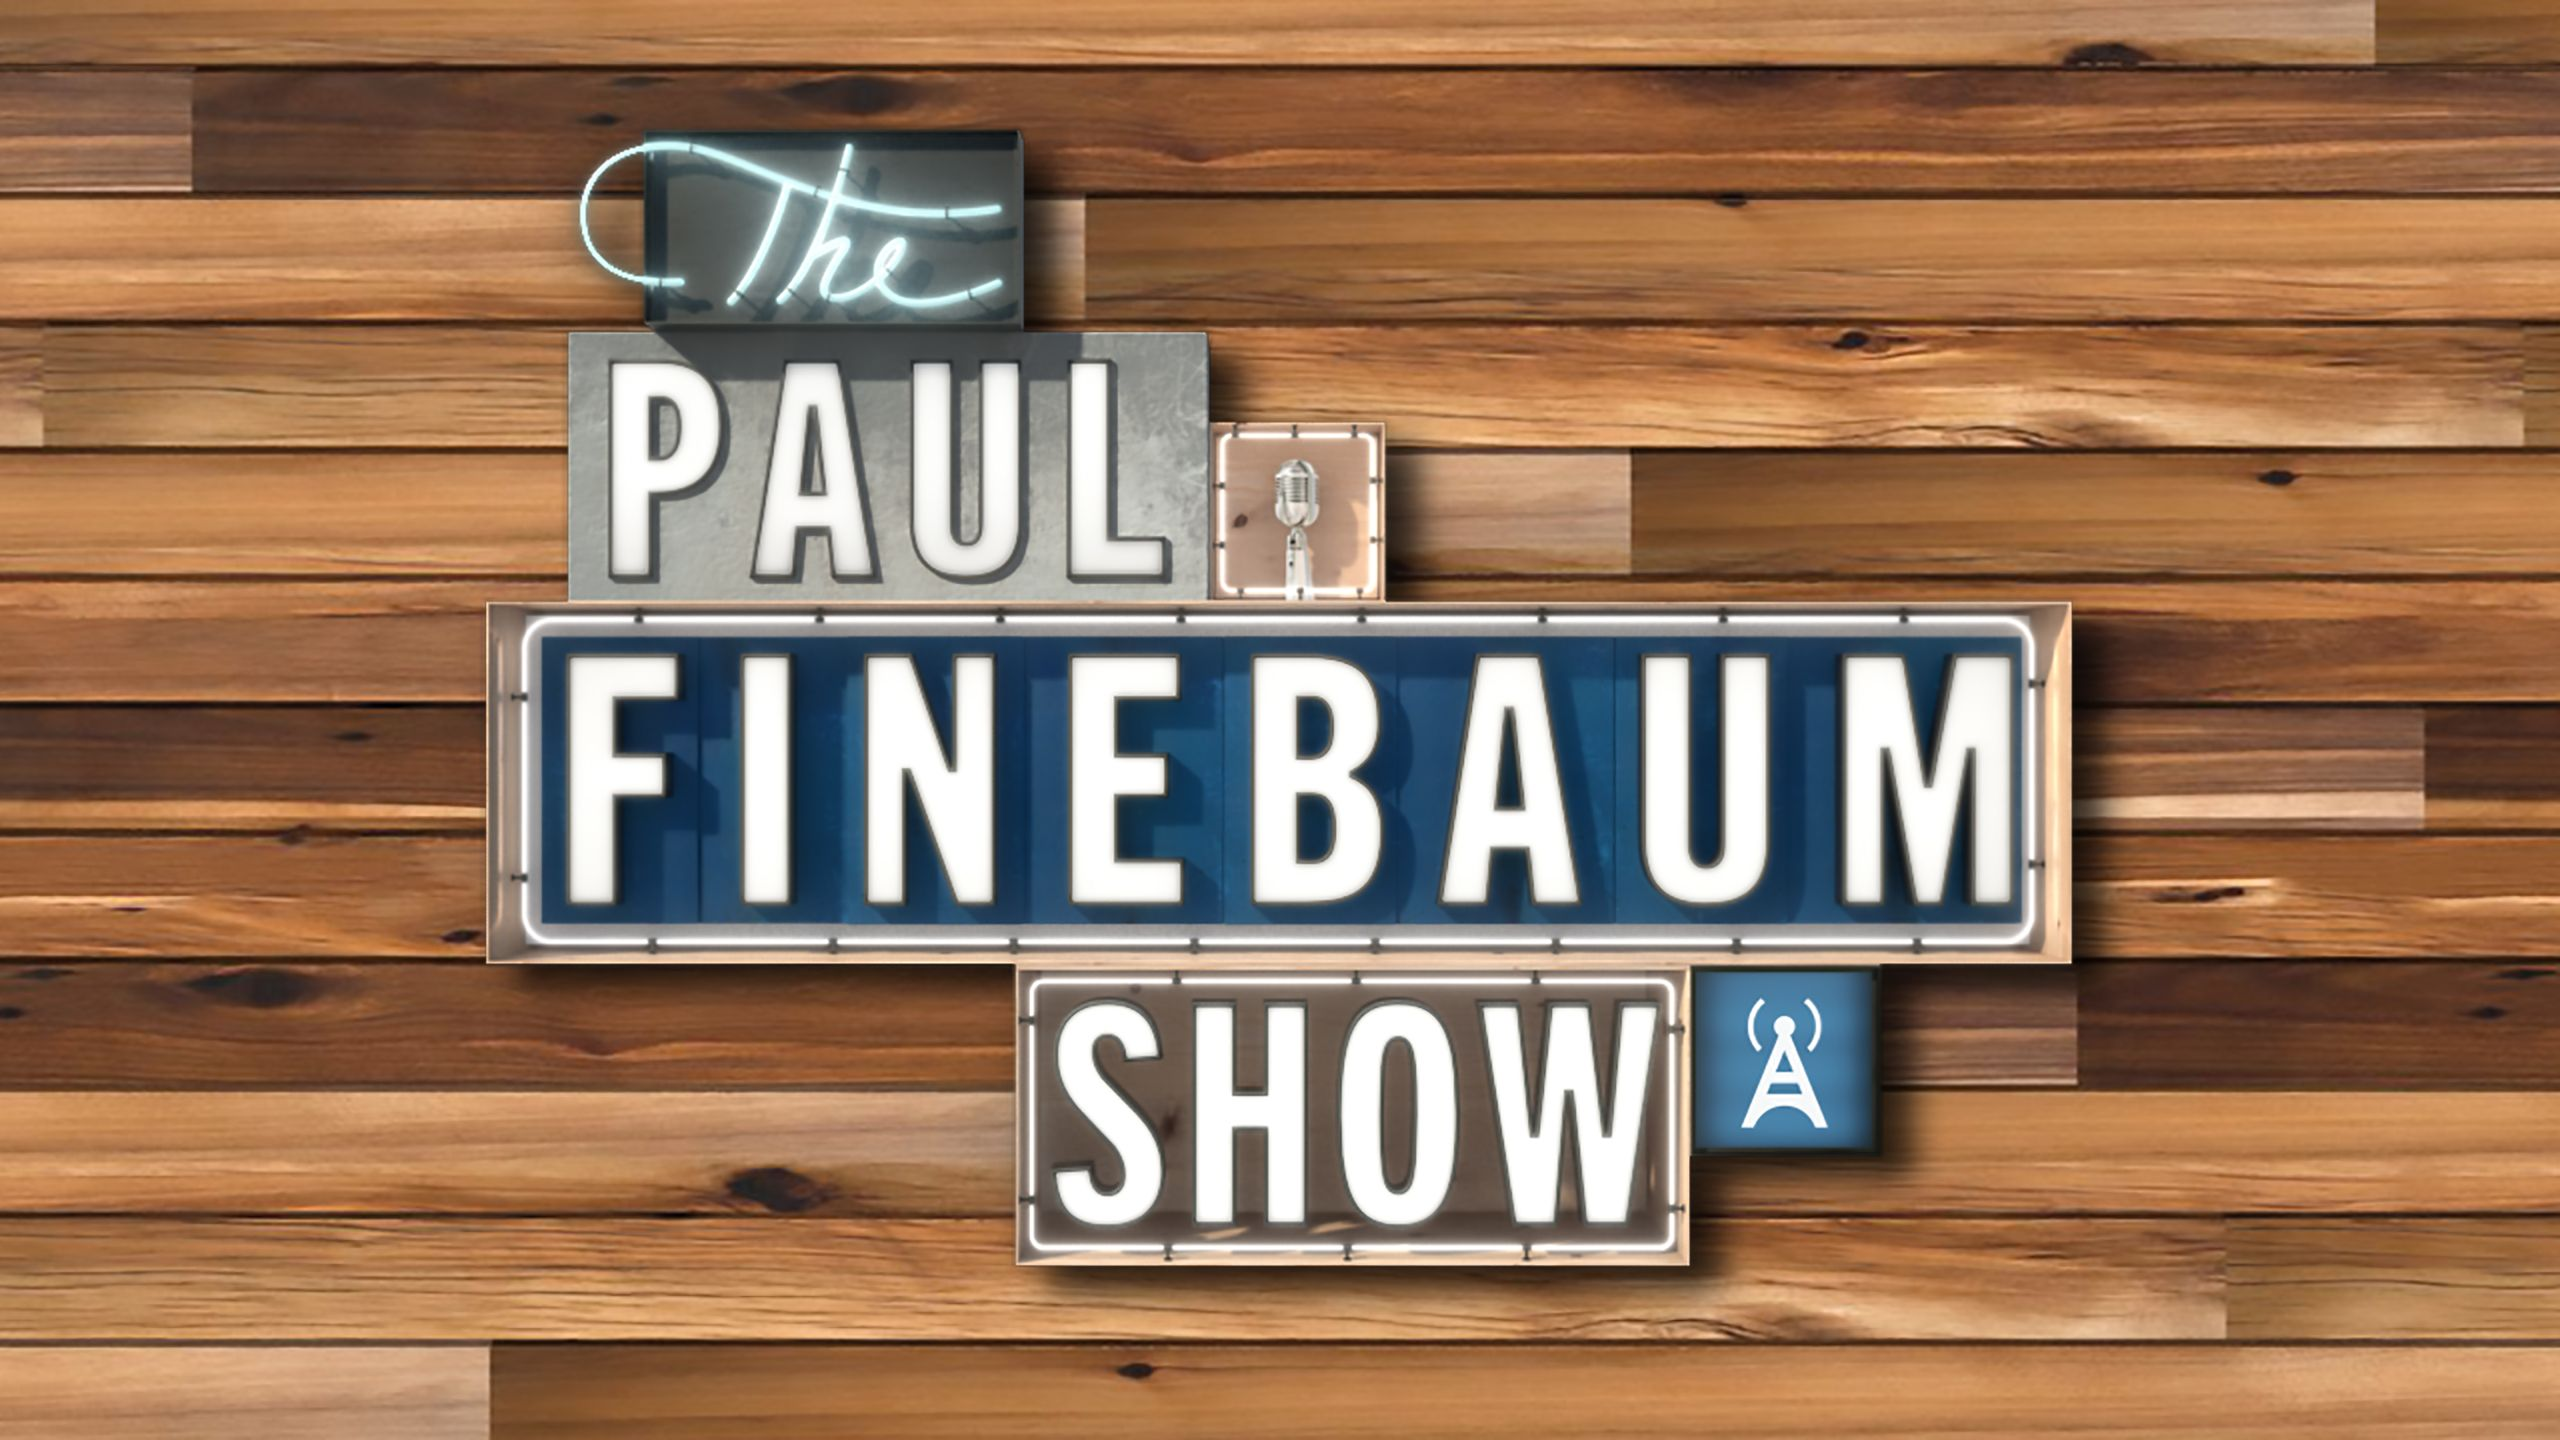 Wed, 1/17 - The Paul Finebaum Show